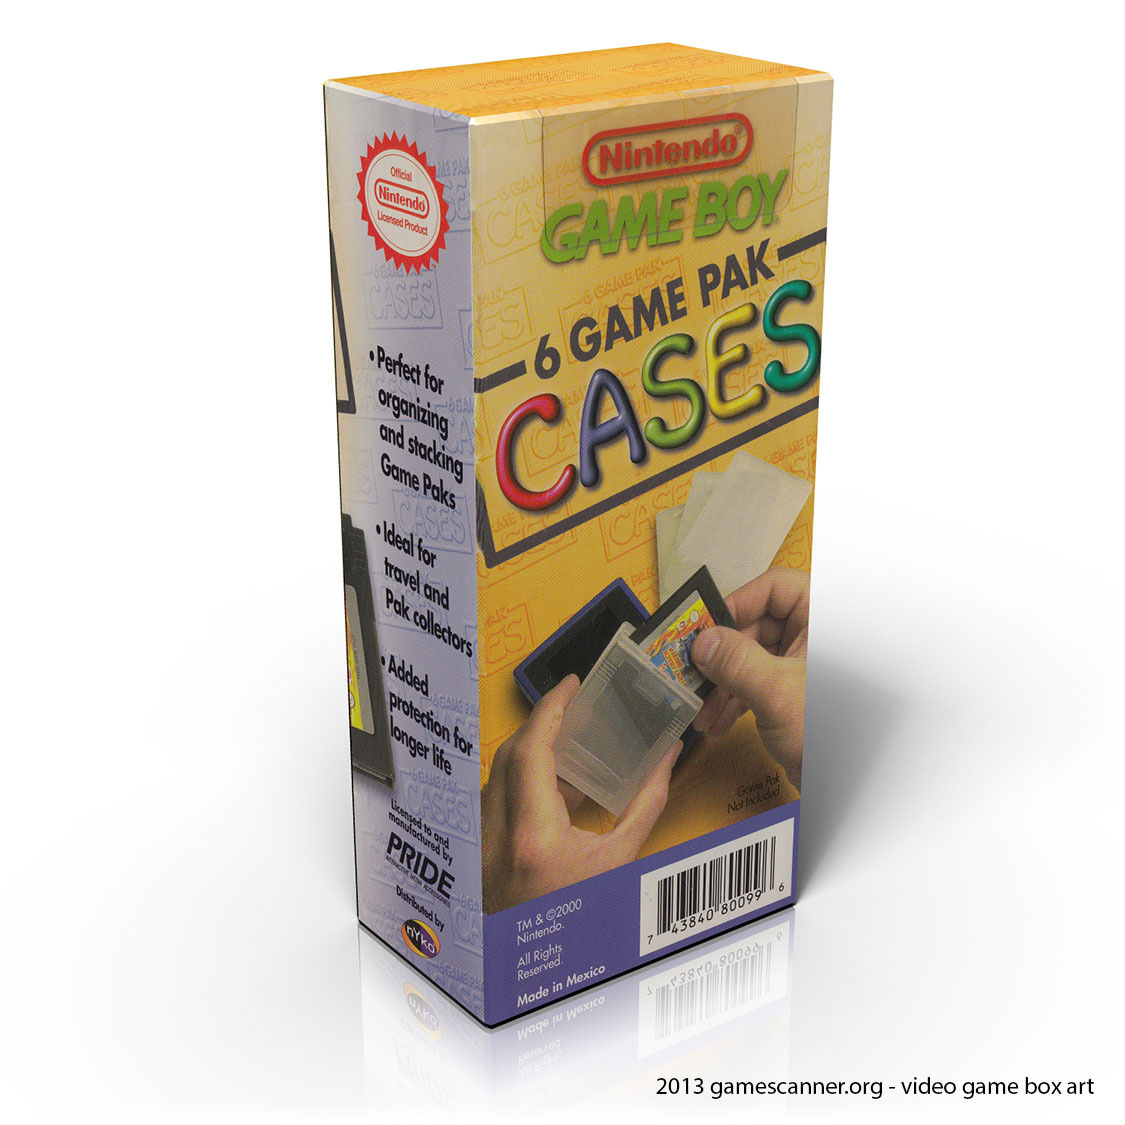 game boy game cases by pride nyko